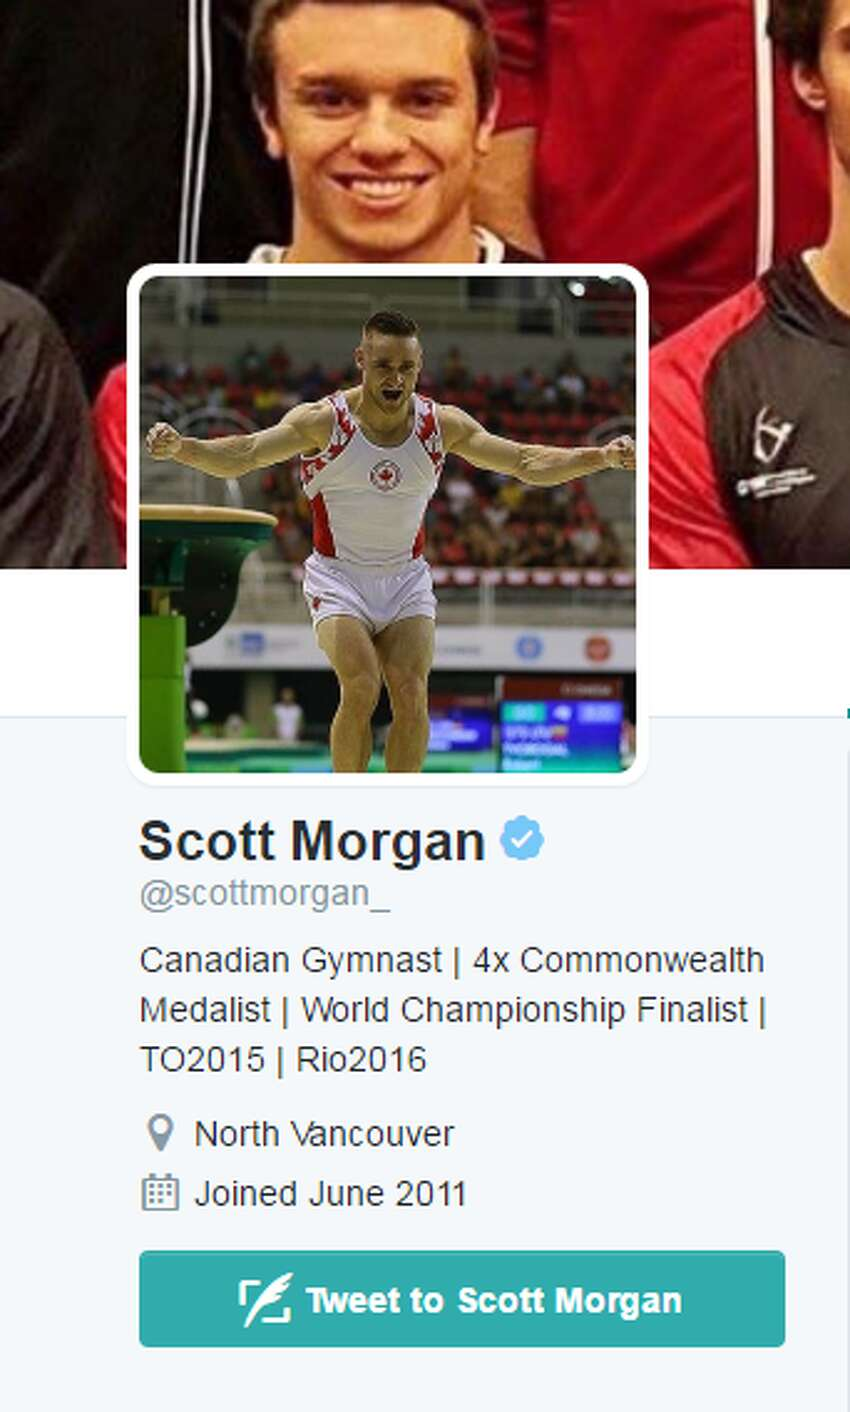 Scott Morgan,Canada Gymnastics Headed to his first Olympics, Morgan will be Canada's sole men's artistic gymnast in Rio. Morgan was Canada's second-most decorated athlete in the 2014 Commonwealth Games where he won four medals including two gold medals.